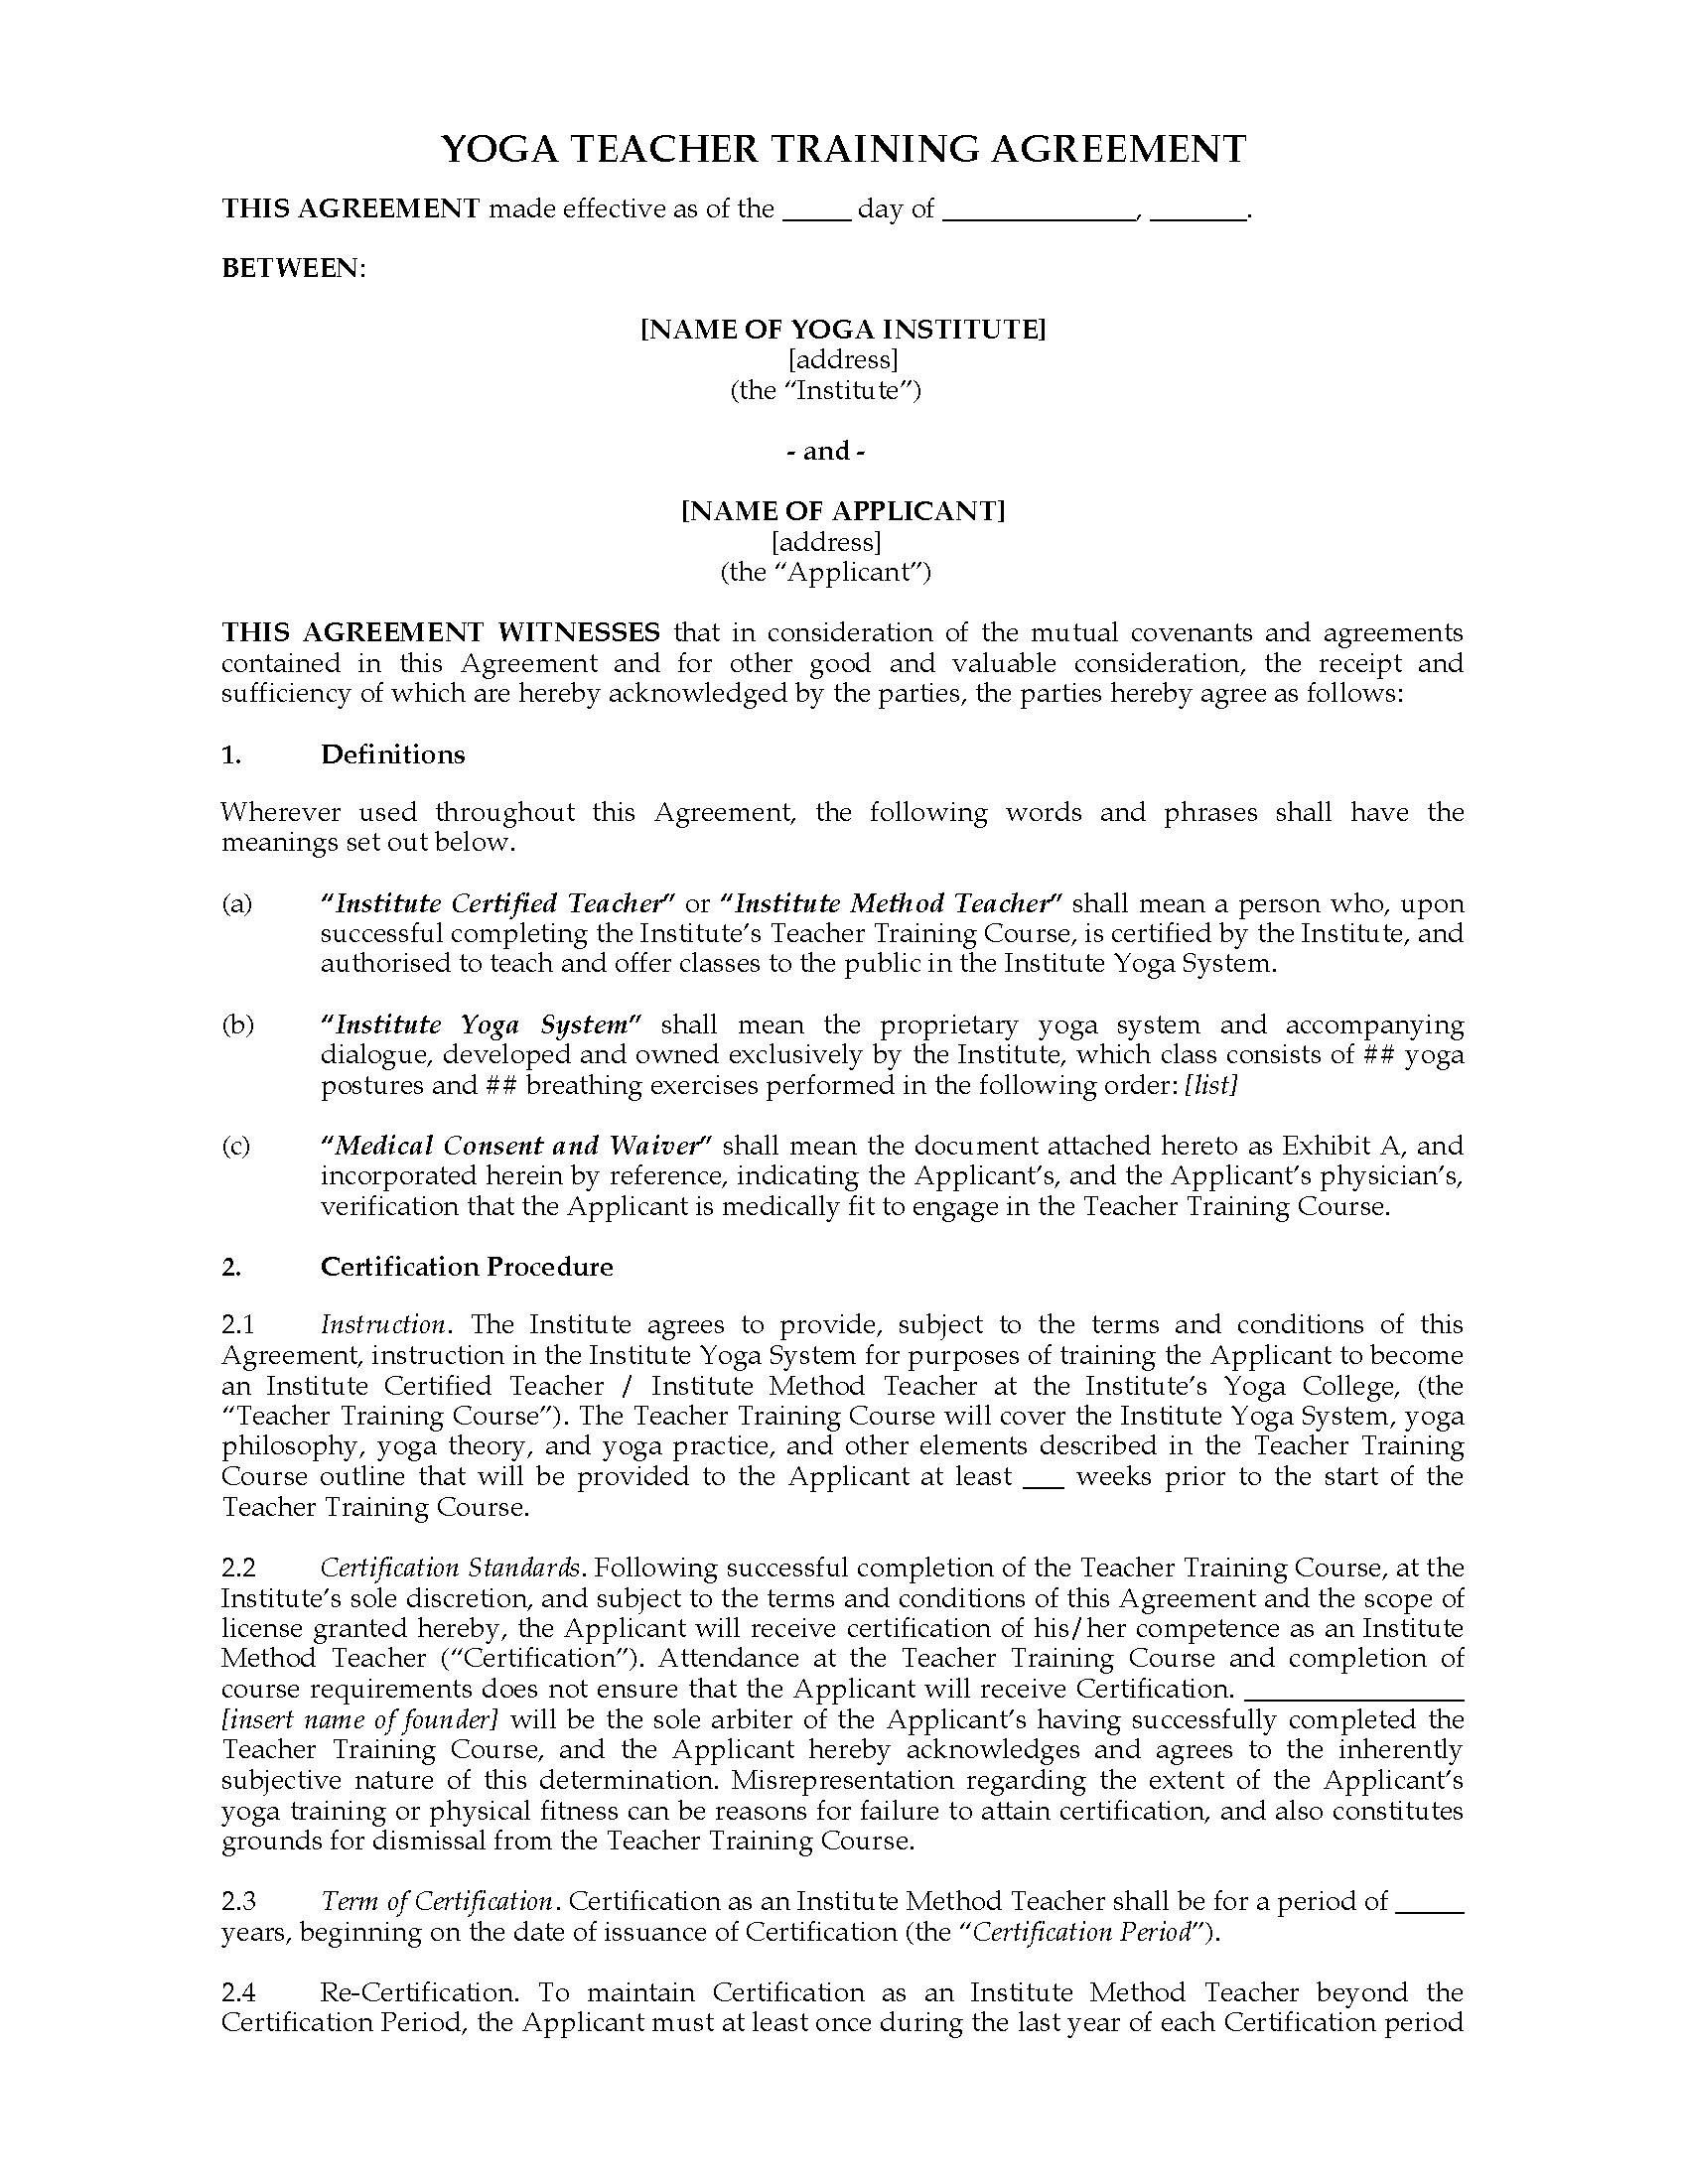 India yoga instructor training agreement legal forms and for Exercise contract template